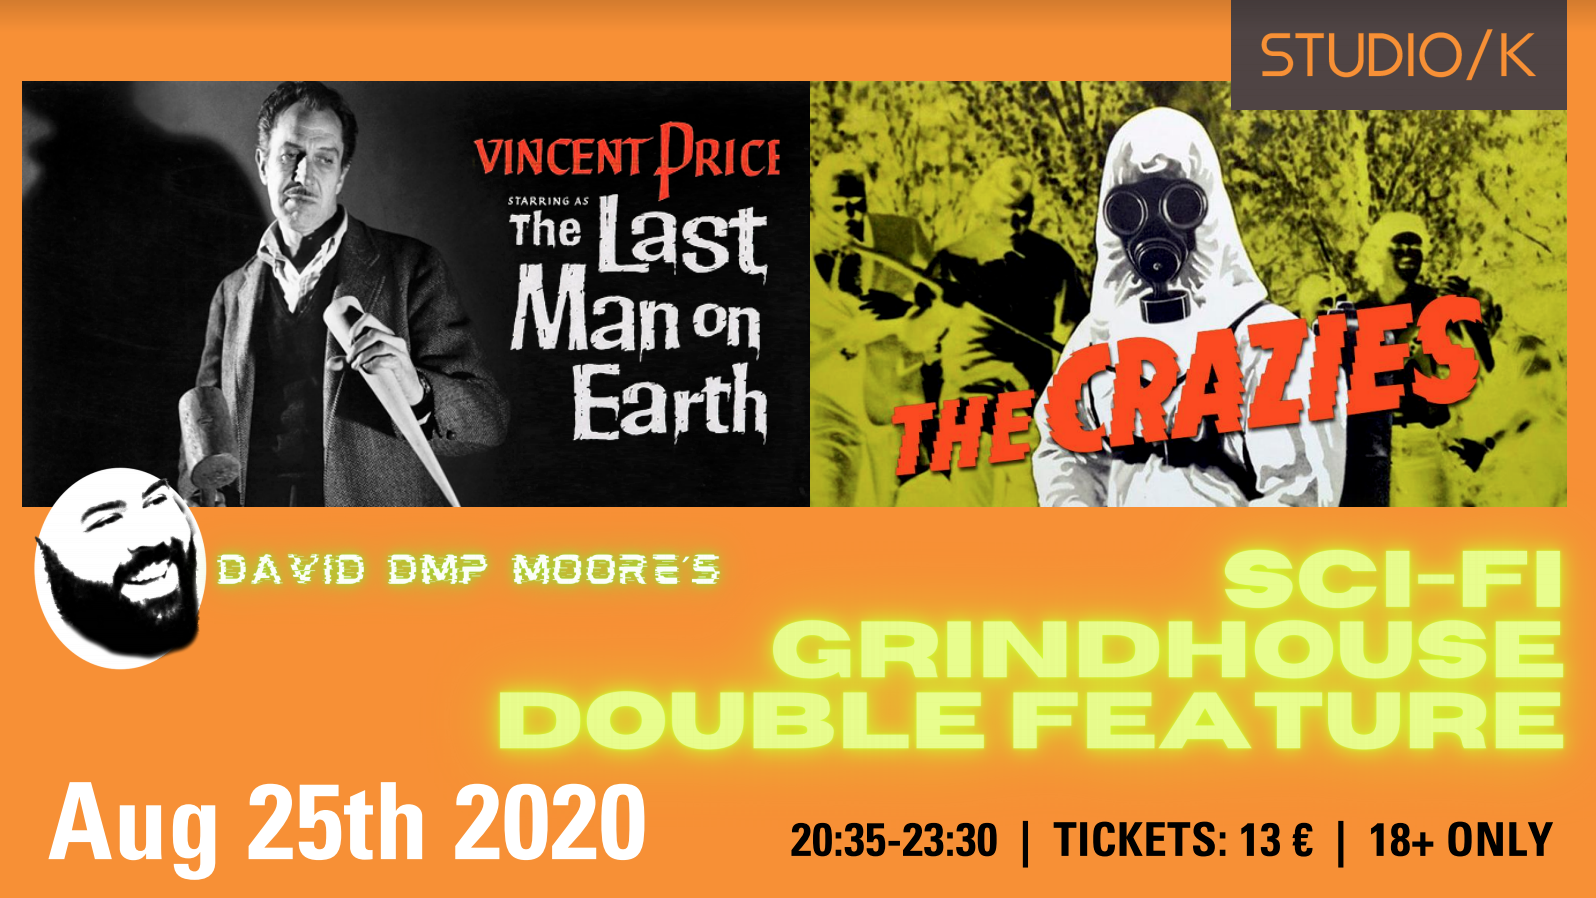 Sci-Fi Grindhouse Double Feature